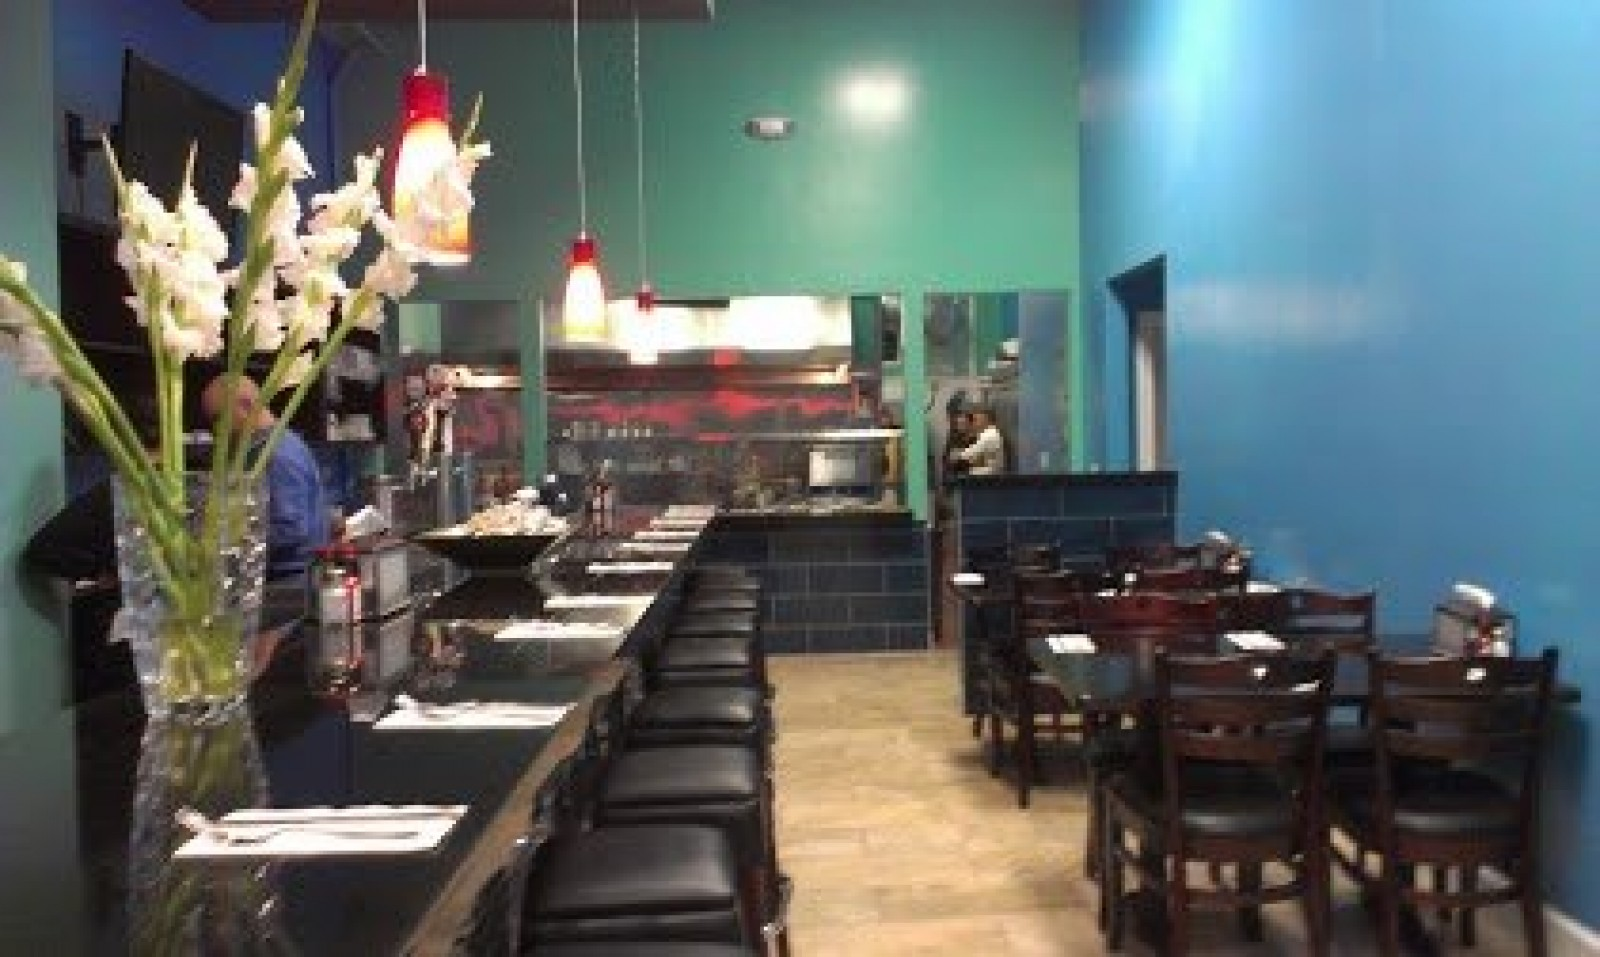 New Mission St. Businesses Open In Response to Valencia St. Success